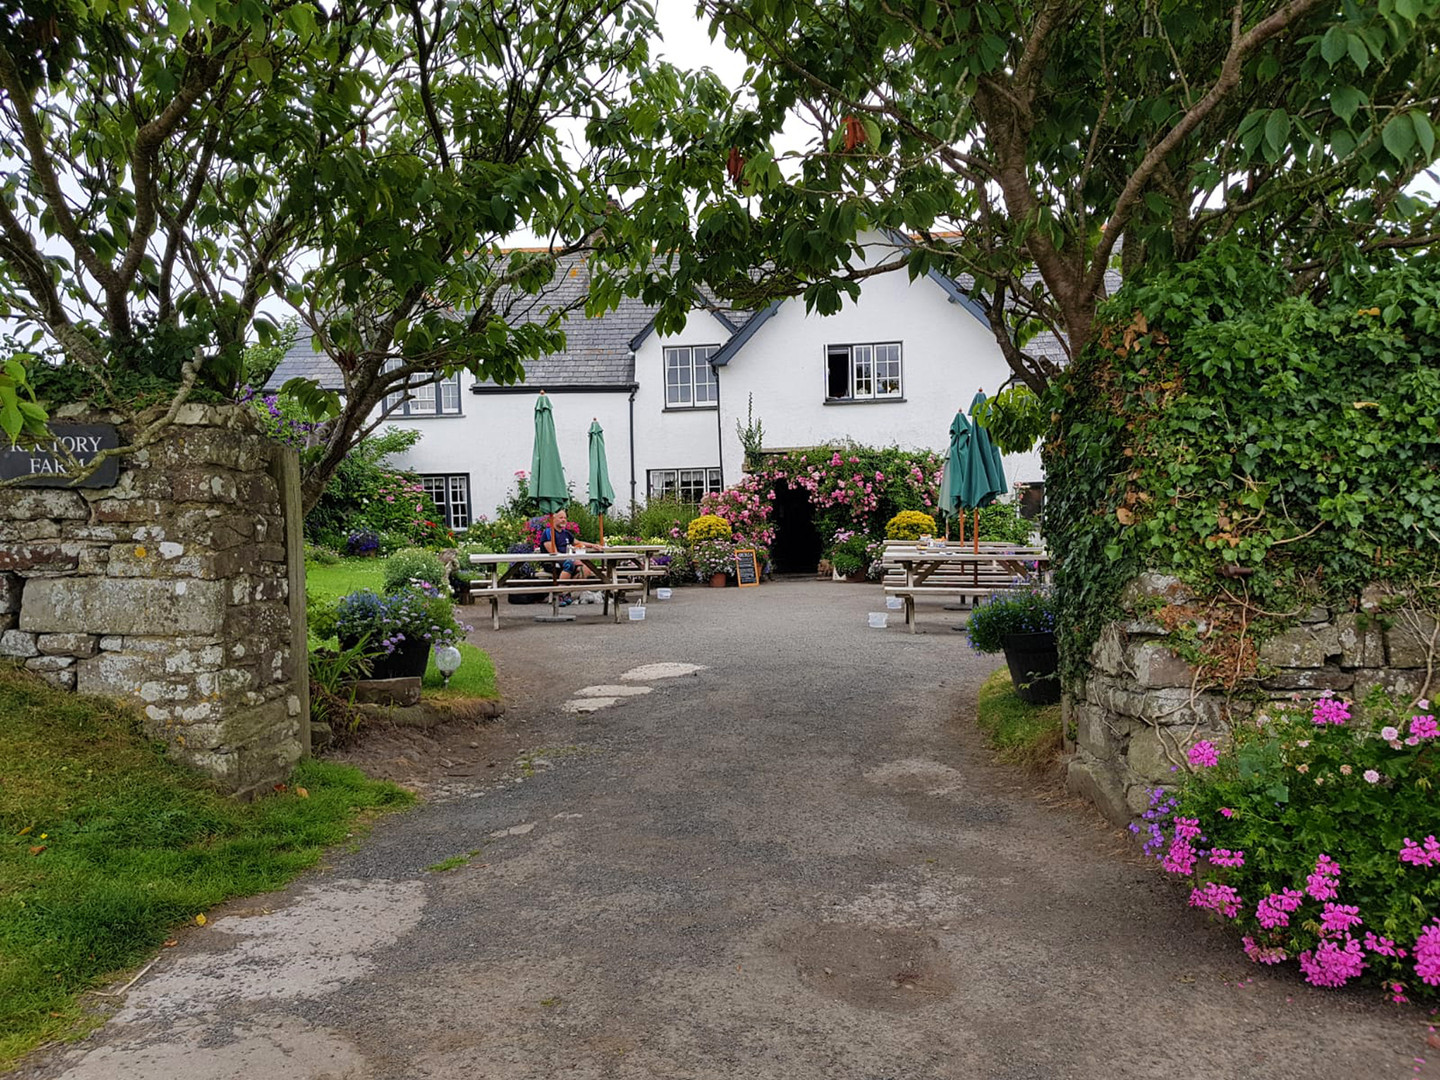 Rectory Farm Tearooms